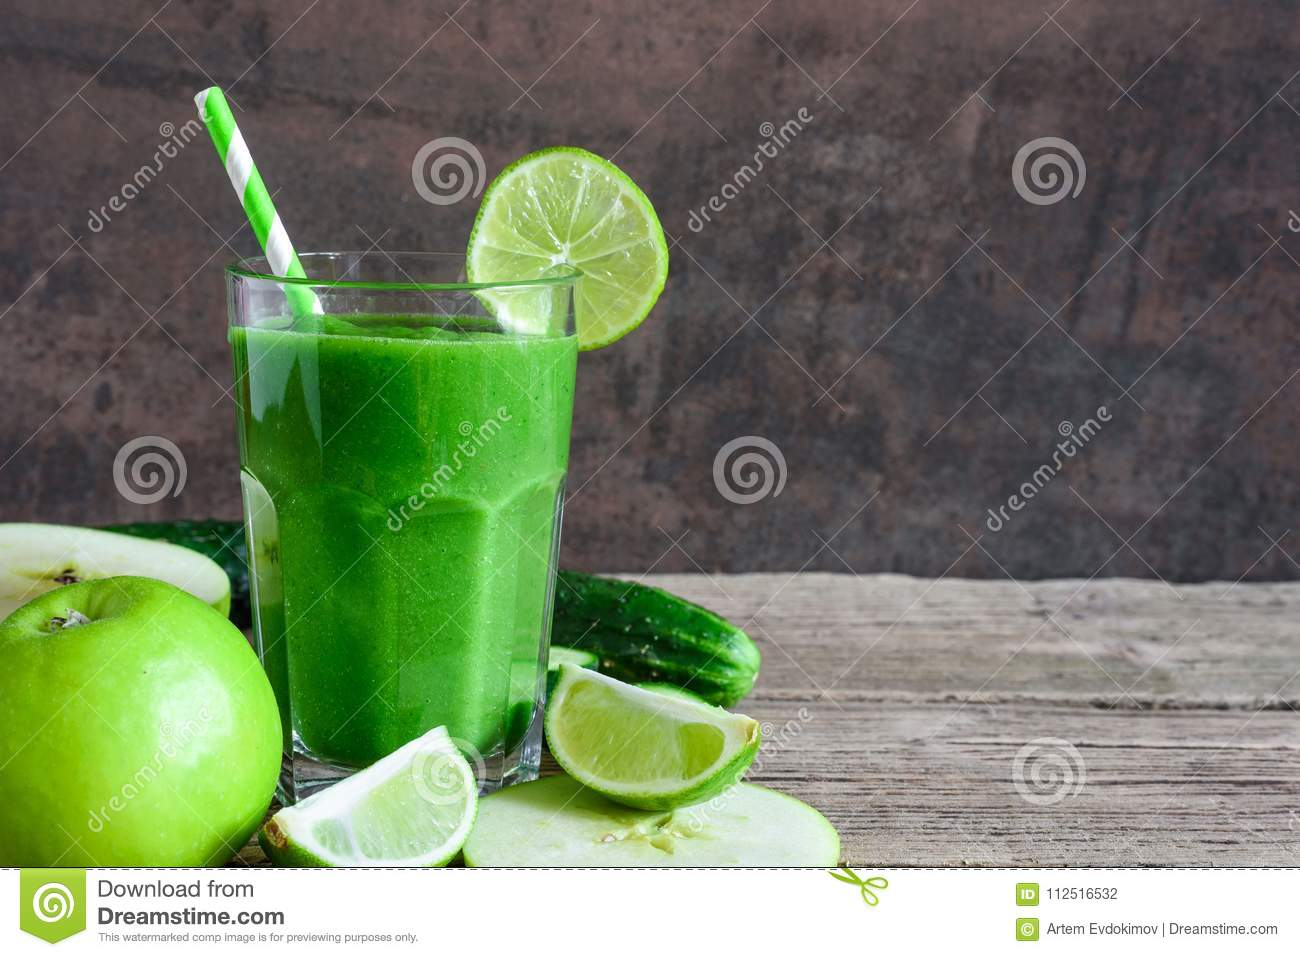 Green healthy smoothie in a glass with spinach, apple, cucumber and lime with a straw. detox drink